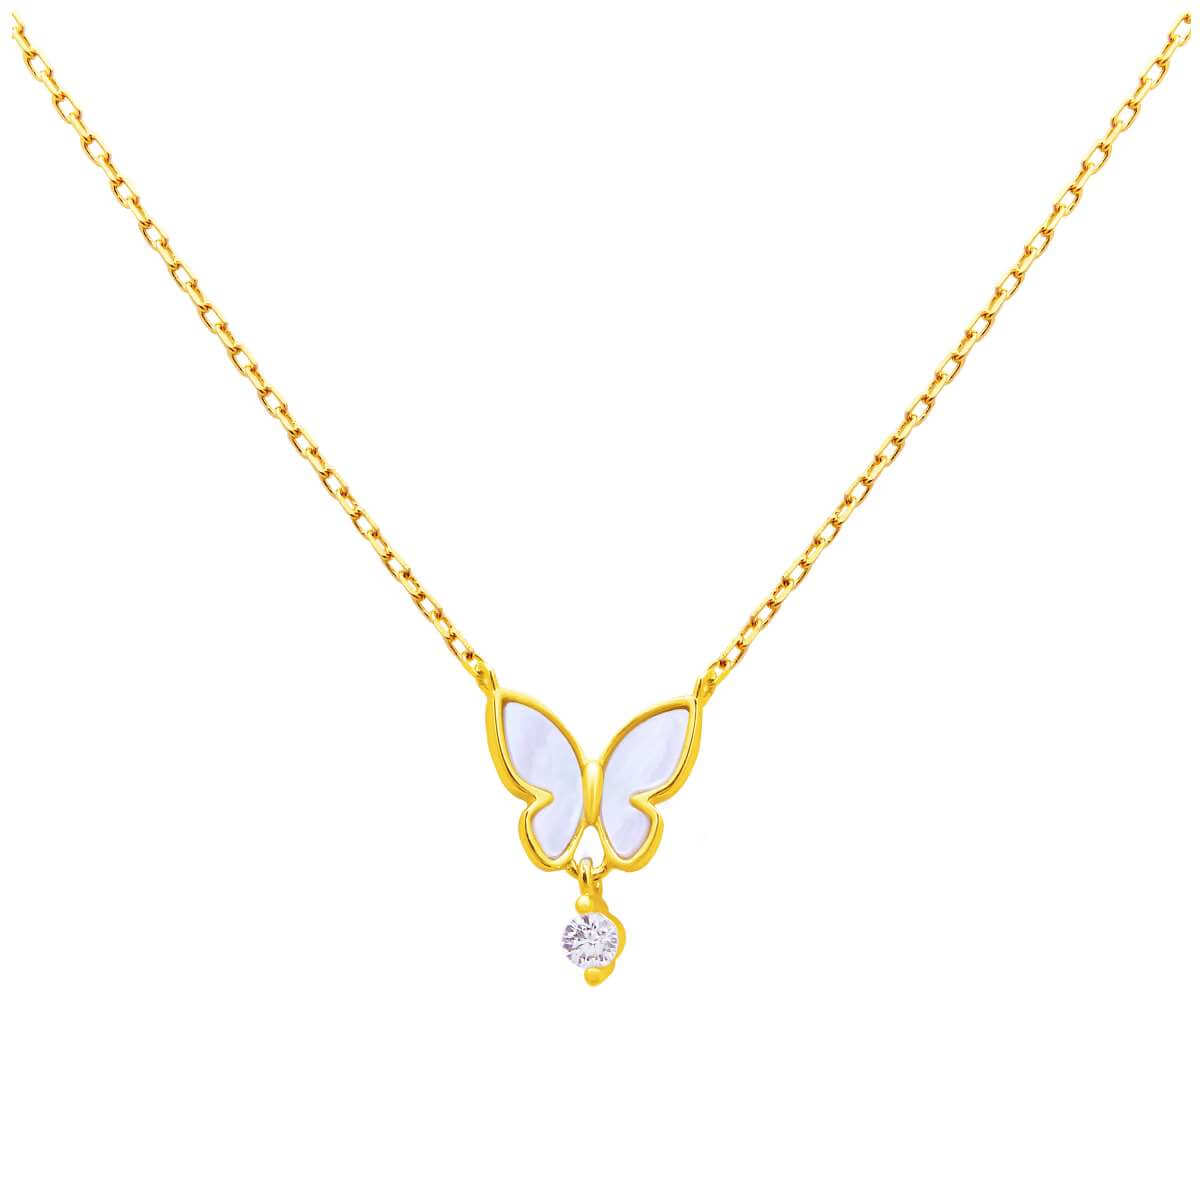 Gold Plated Sterling Silver Butterfly CZ Necklace 18 Inch